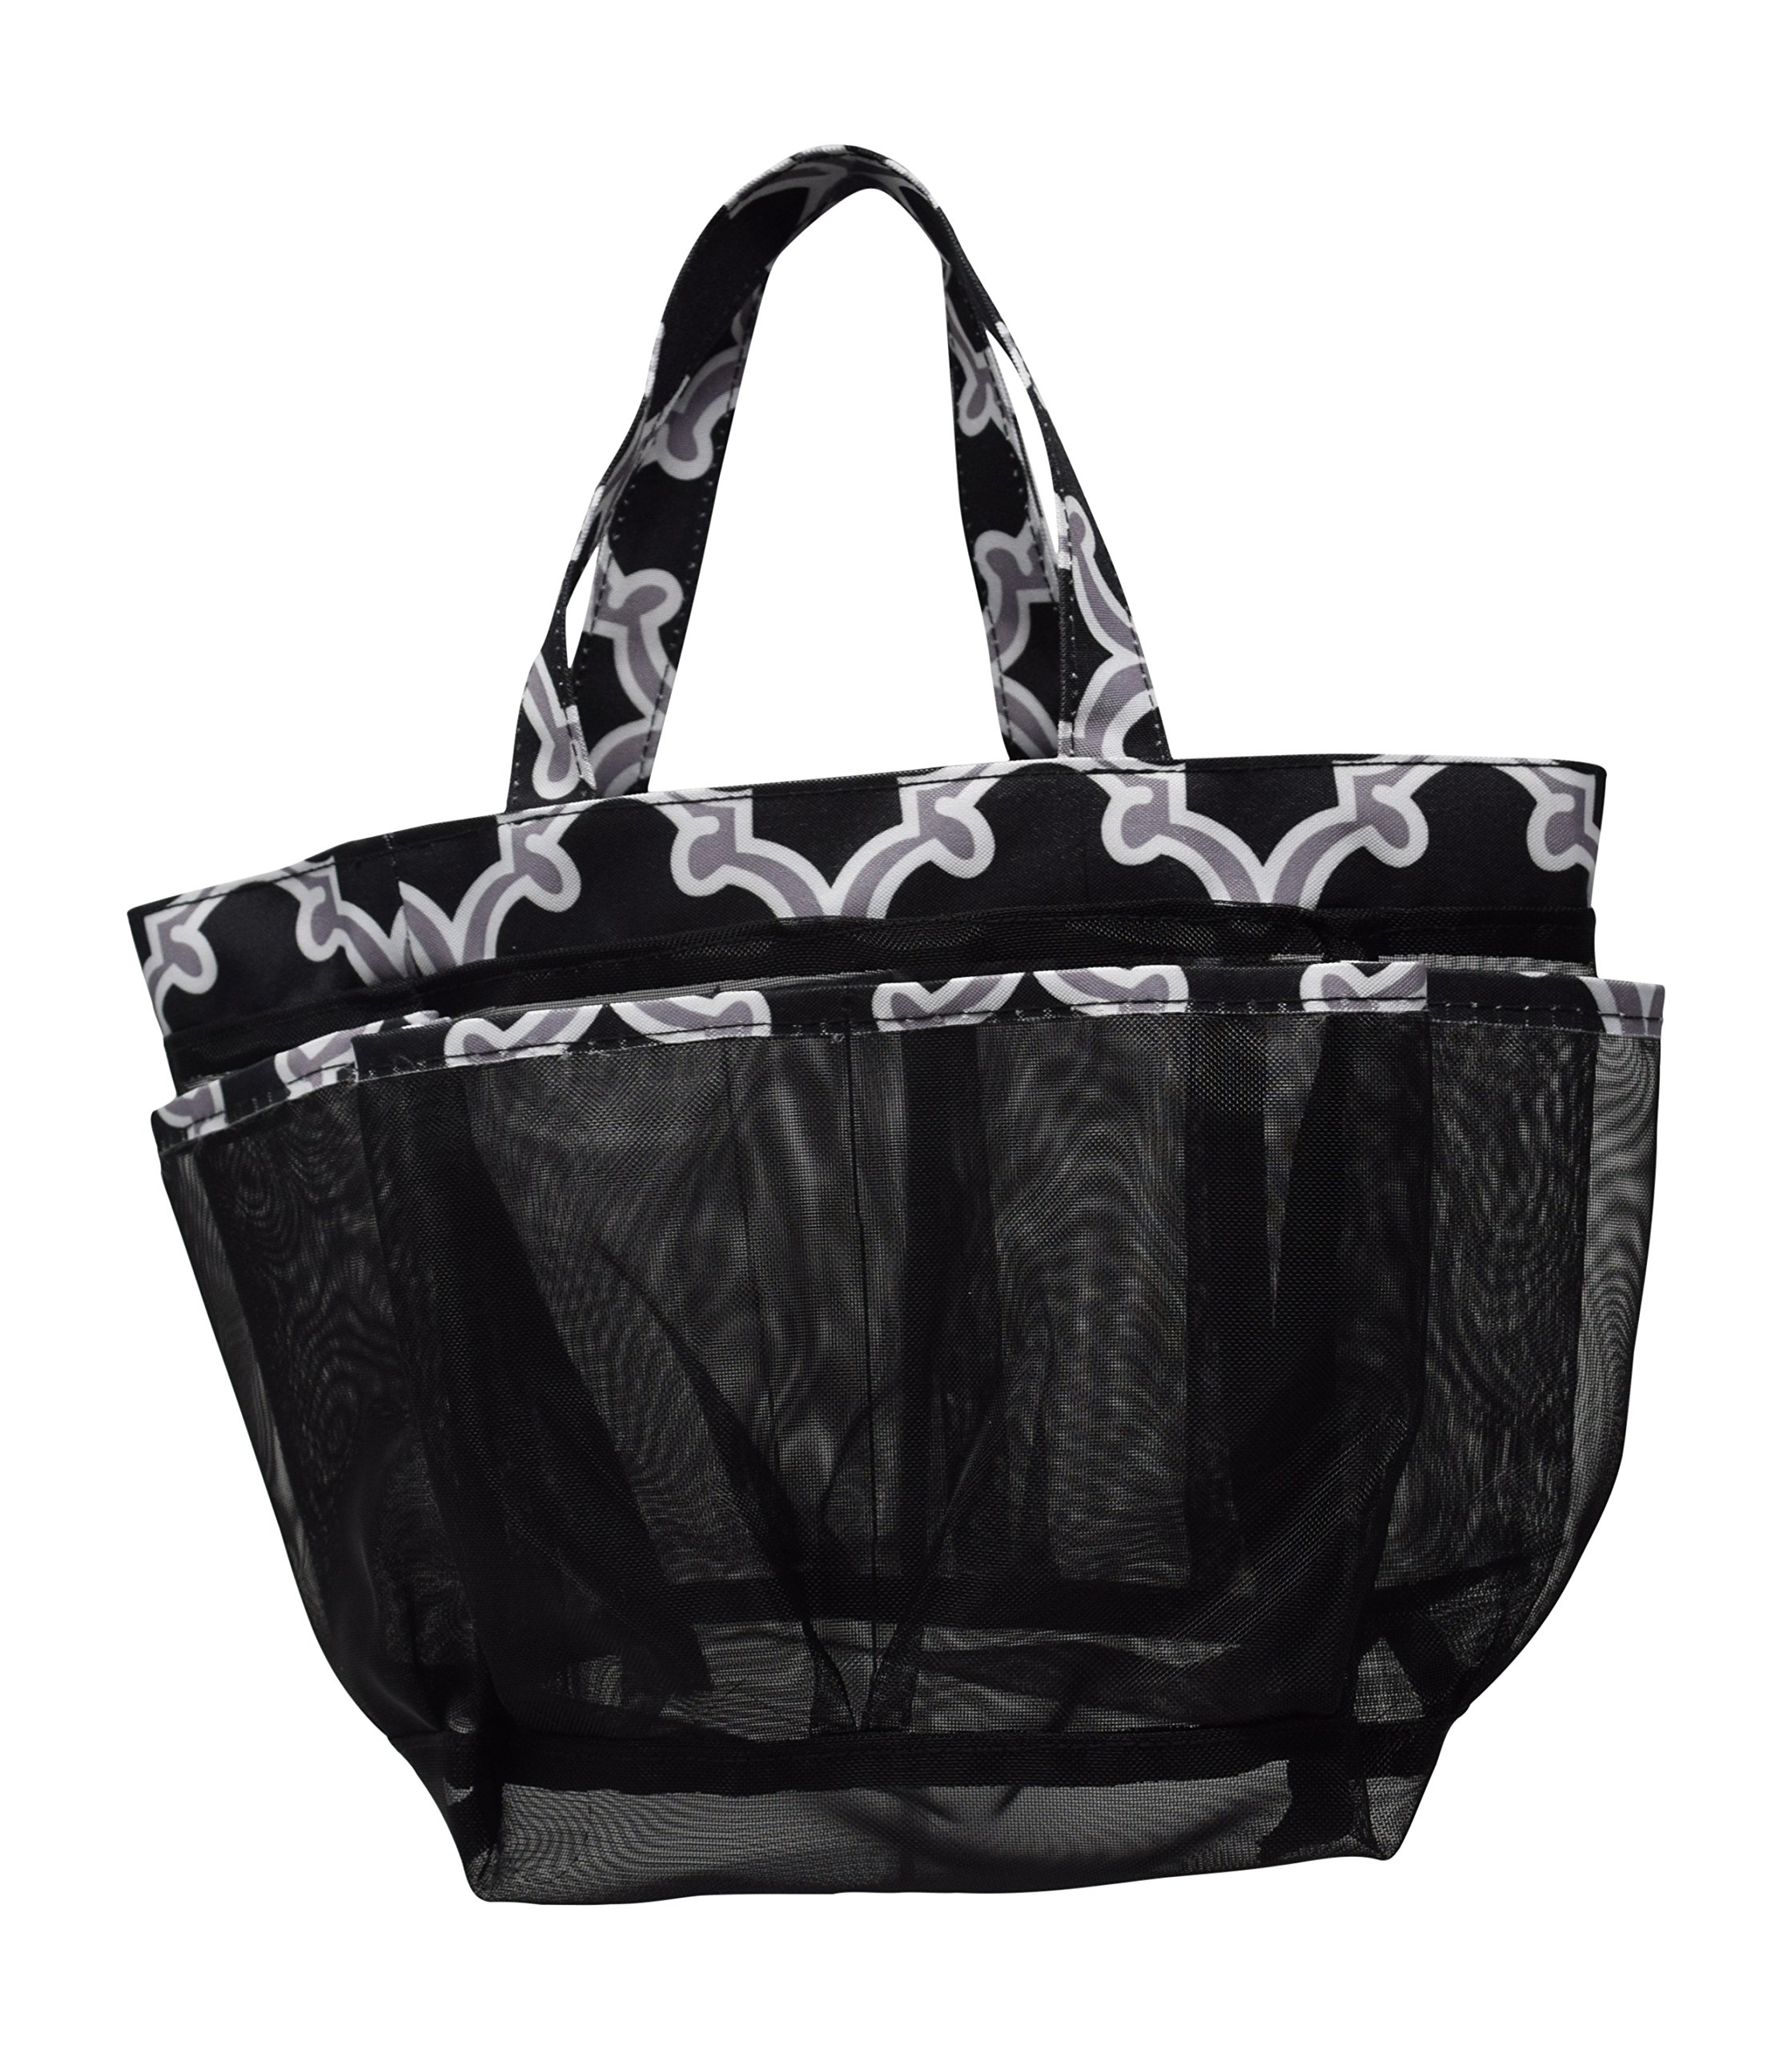 Nickanny's 8 Pocket Large Mesh Shower Caddy Tote With Fabric Double Handles For Quick Drying To Keep Your Essentials In Reach (Black/Grey Quatrefoil)